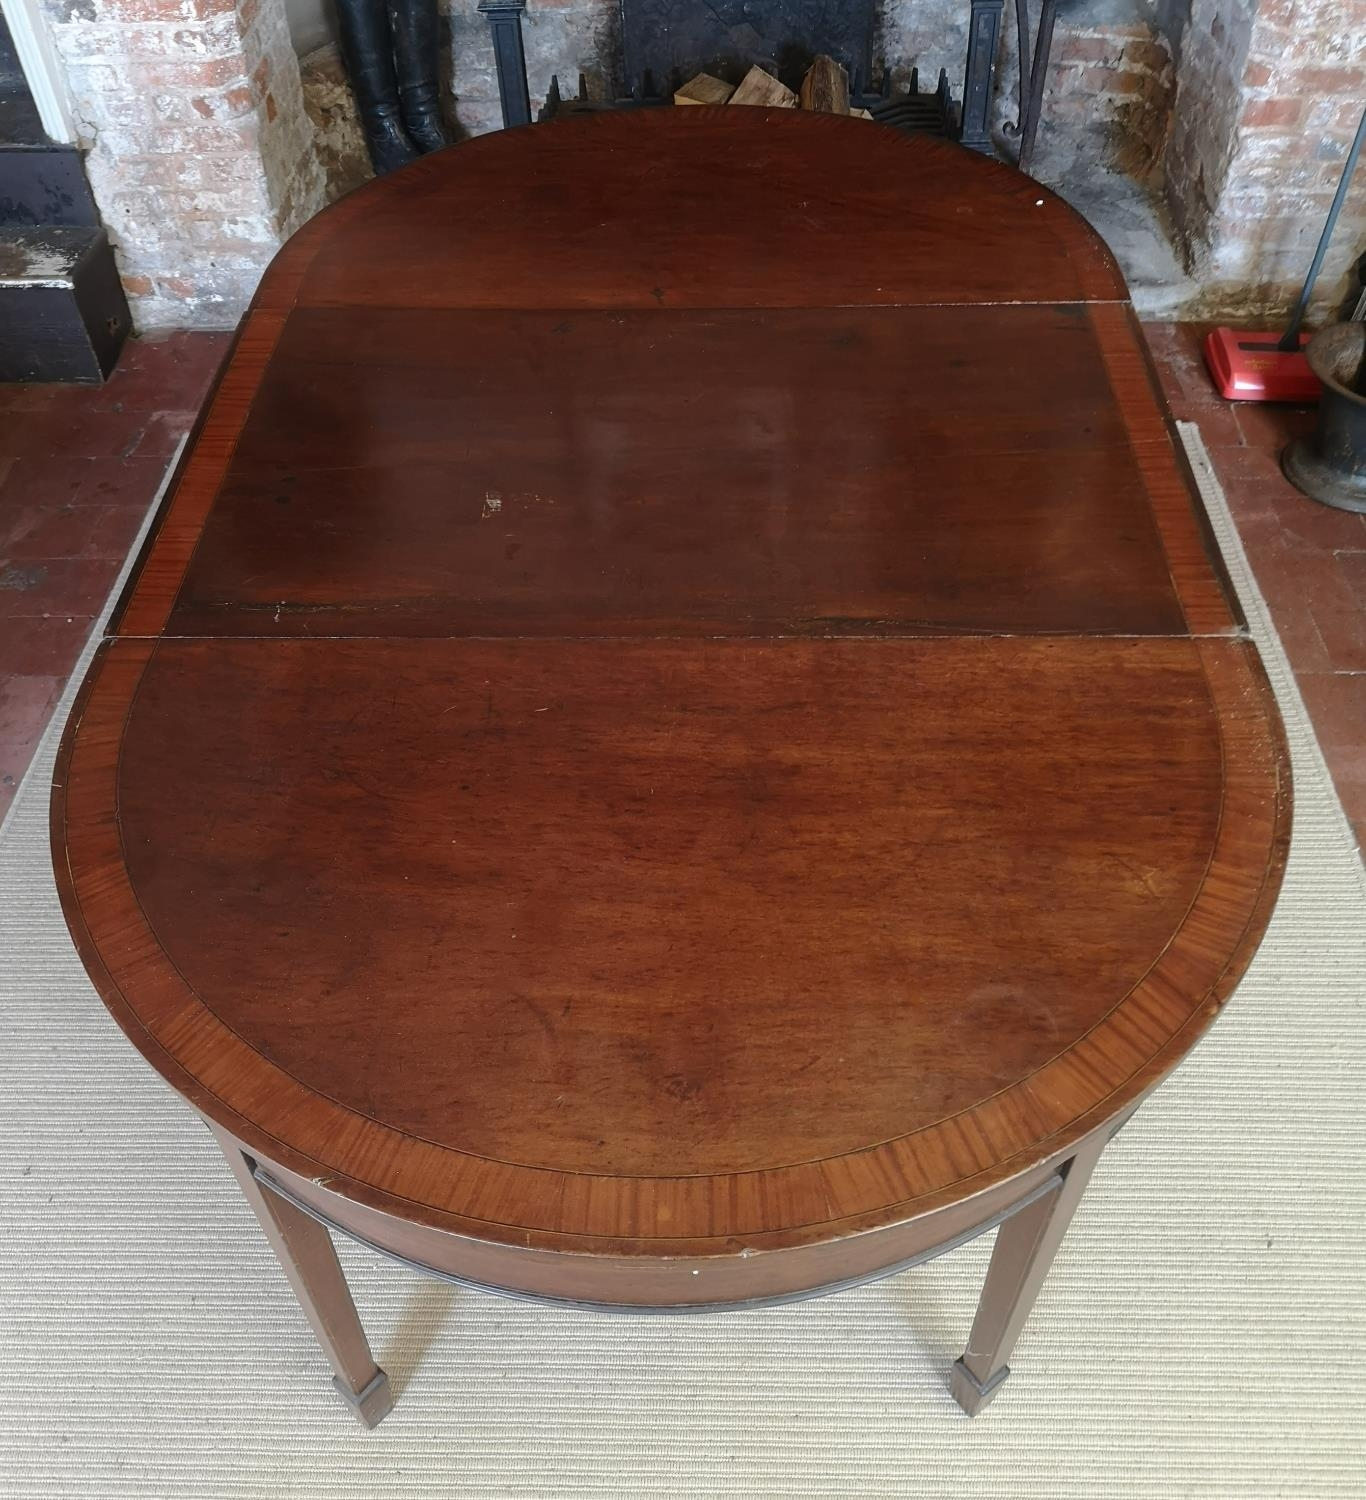 A 19TH CENTURY MAHOGANY AND CROSSBANDED 'D' END DINING TABLE With one extra leaf, raised on square - Image 3 of 4